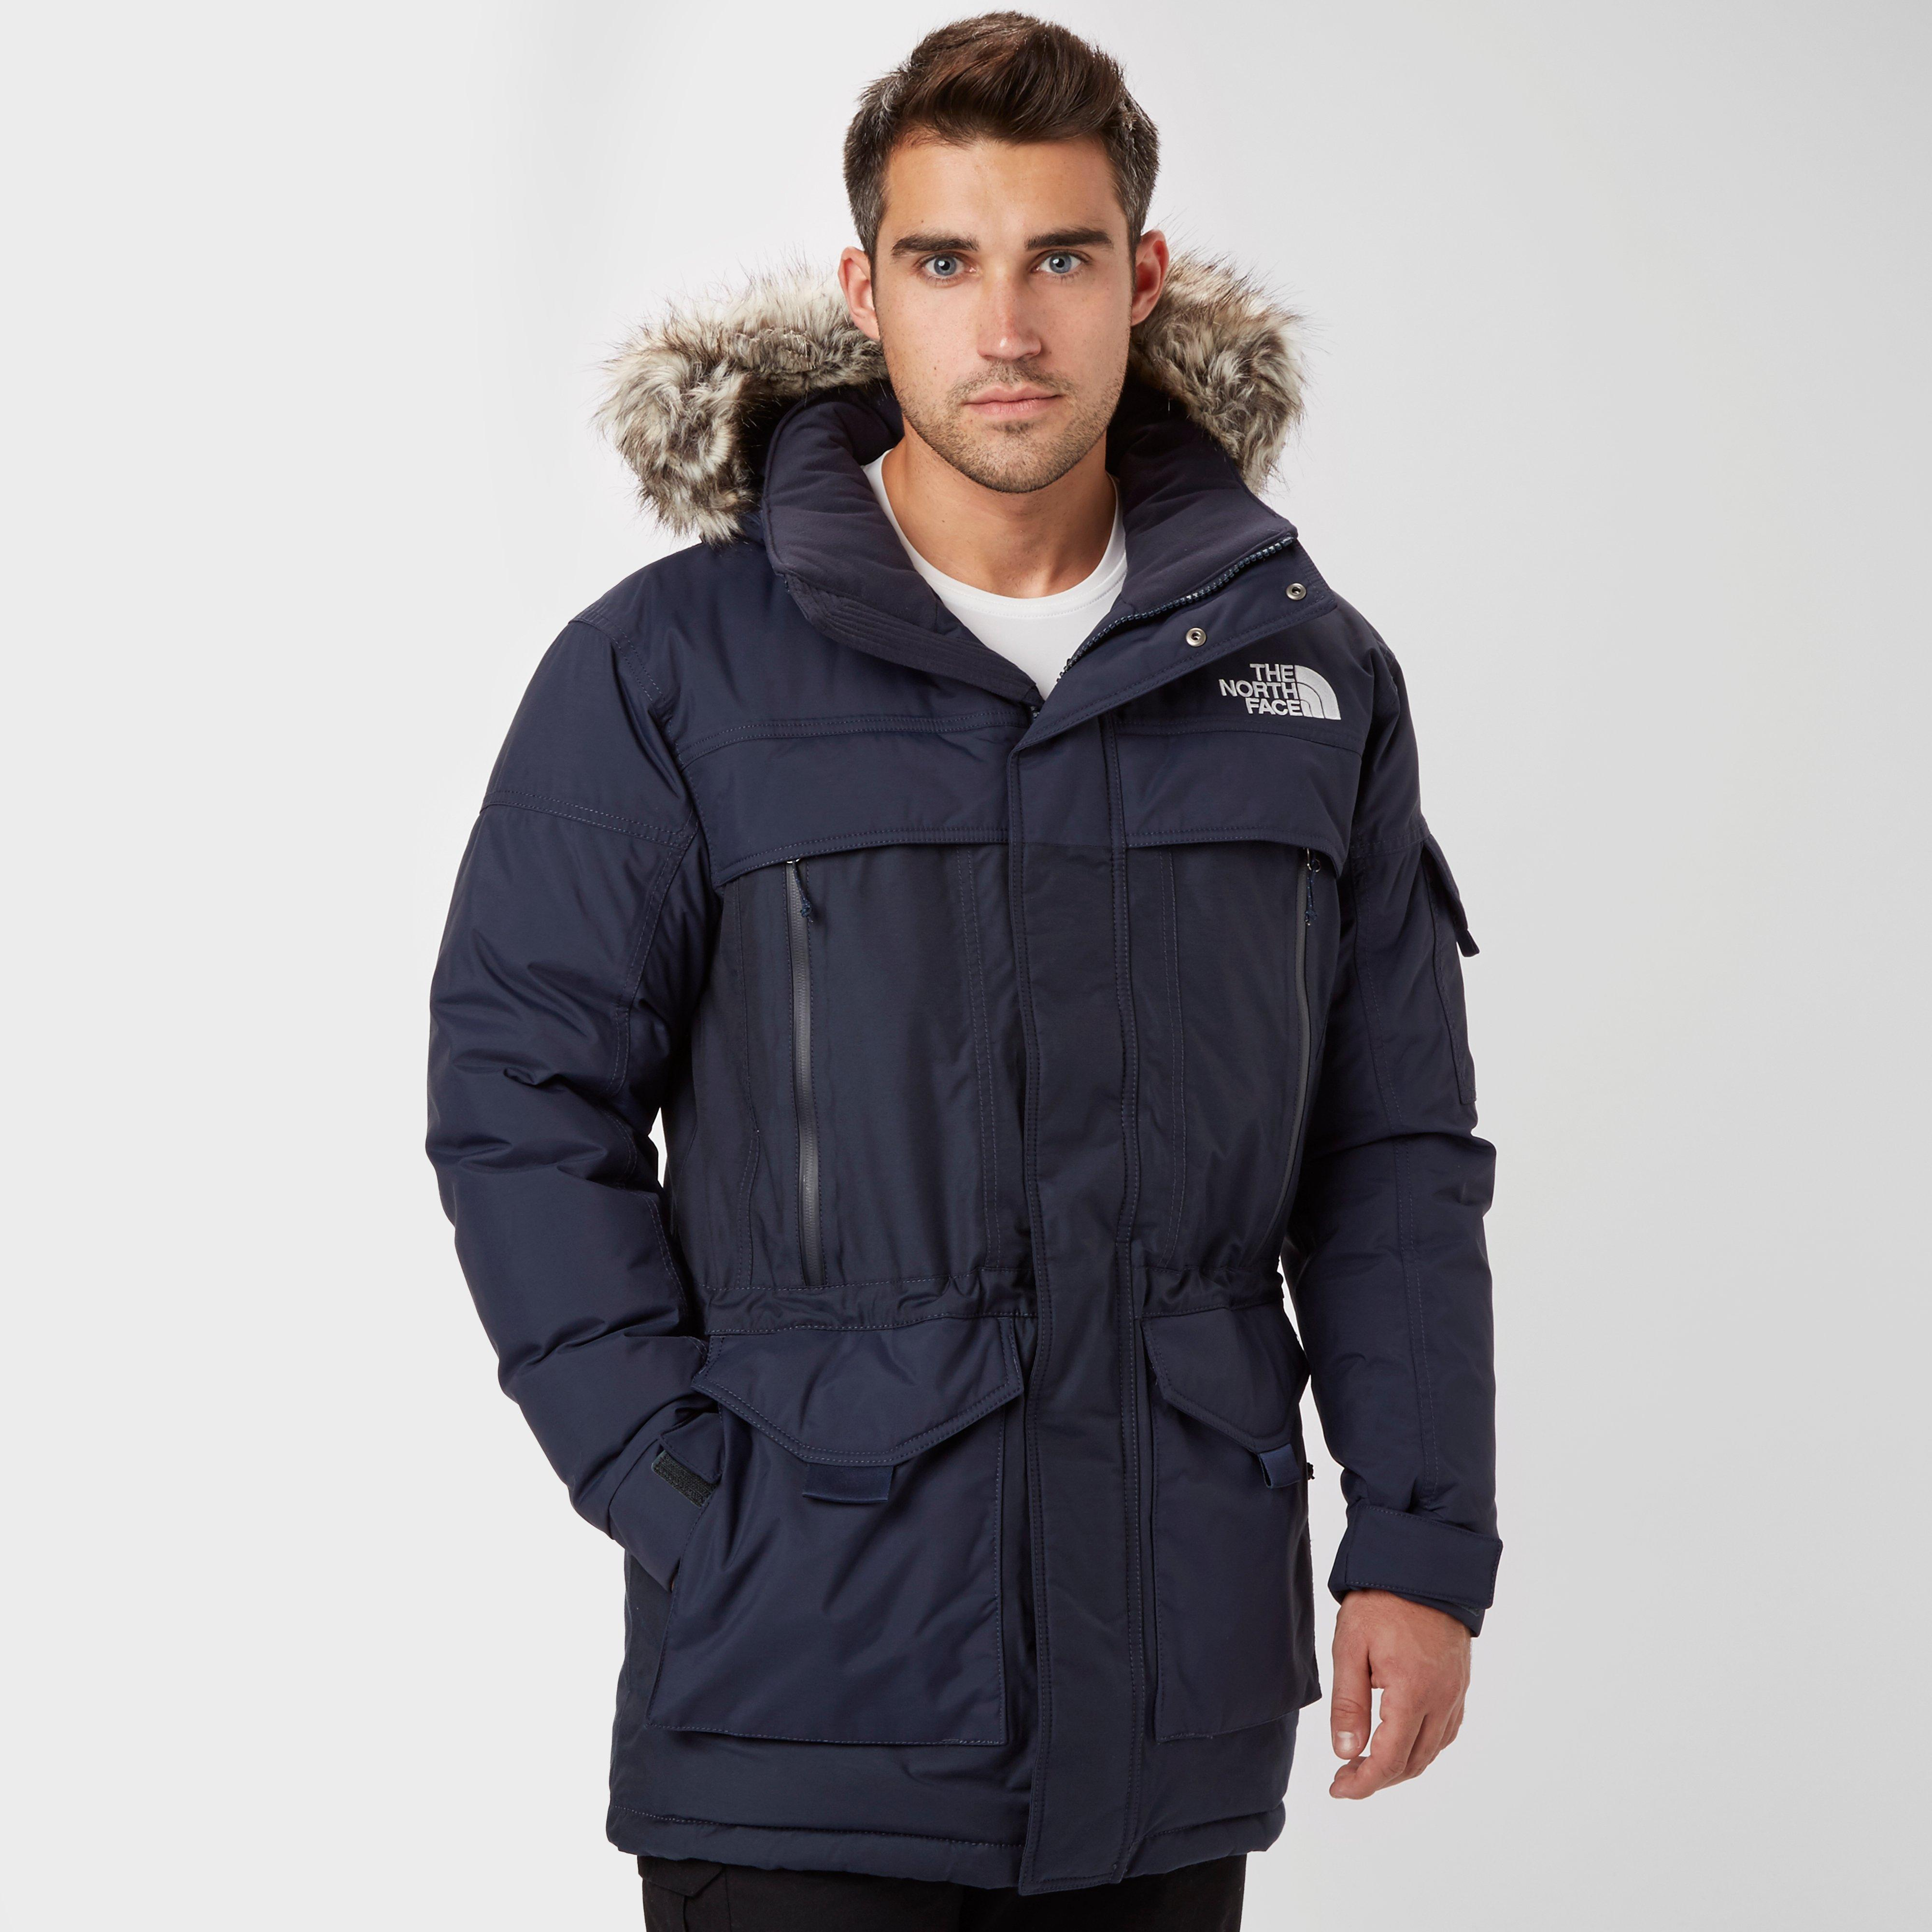 Shop our exclusive collection of licensed Navy Men's Jackets and Windbreakers. Free Shipping is available for qualified purchases.